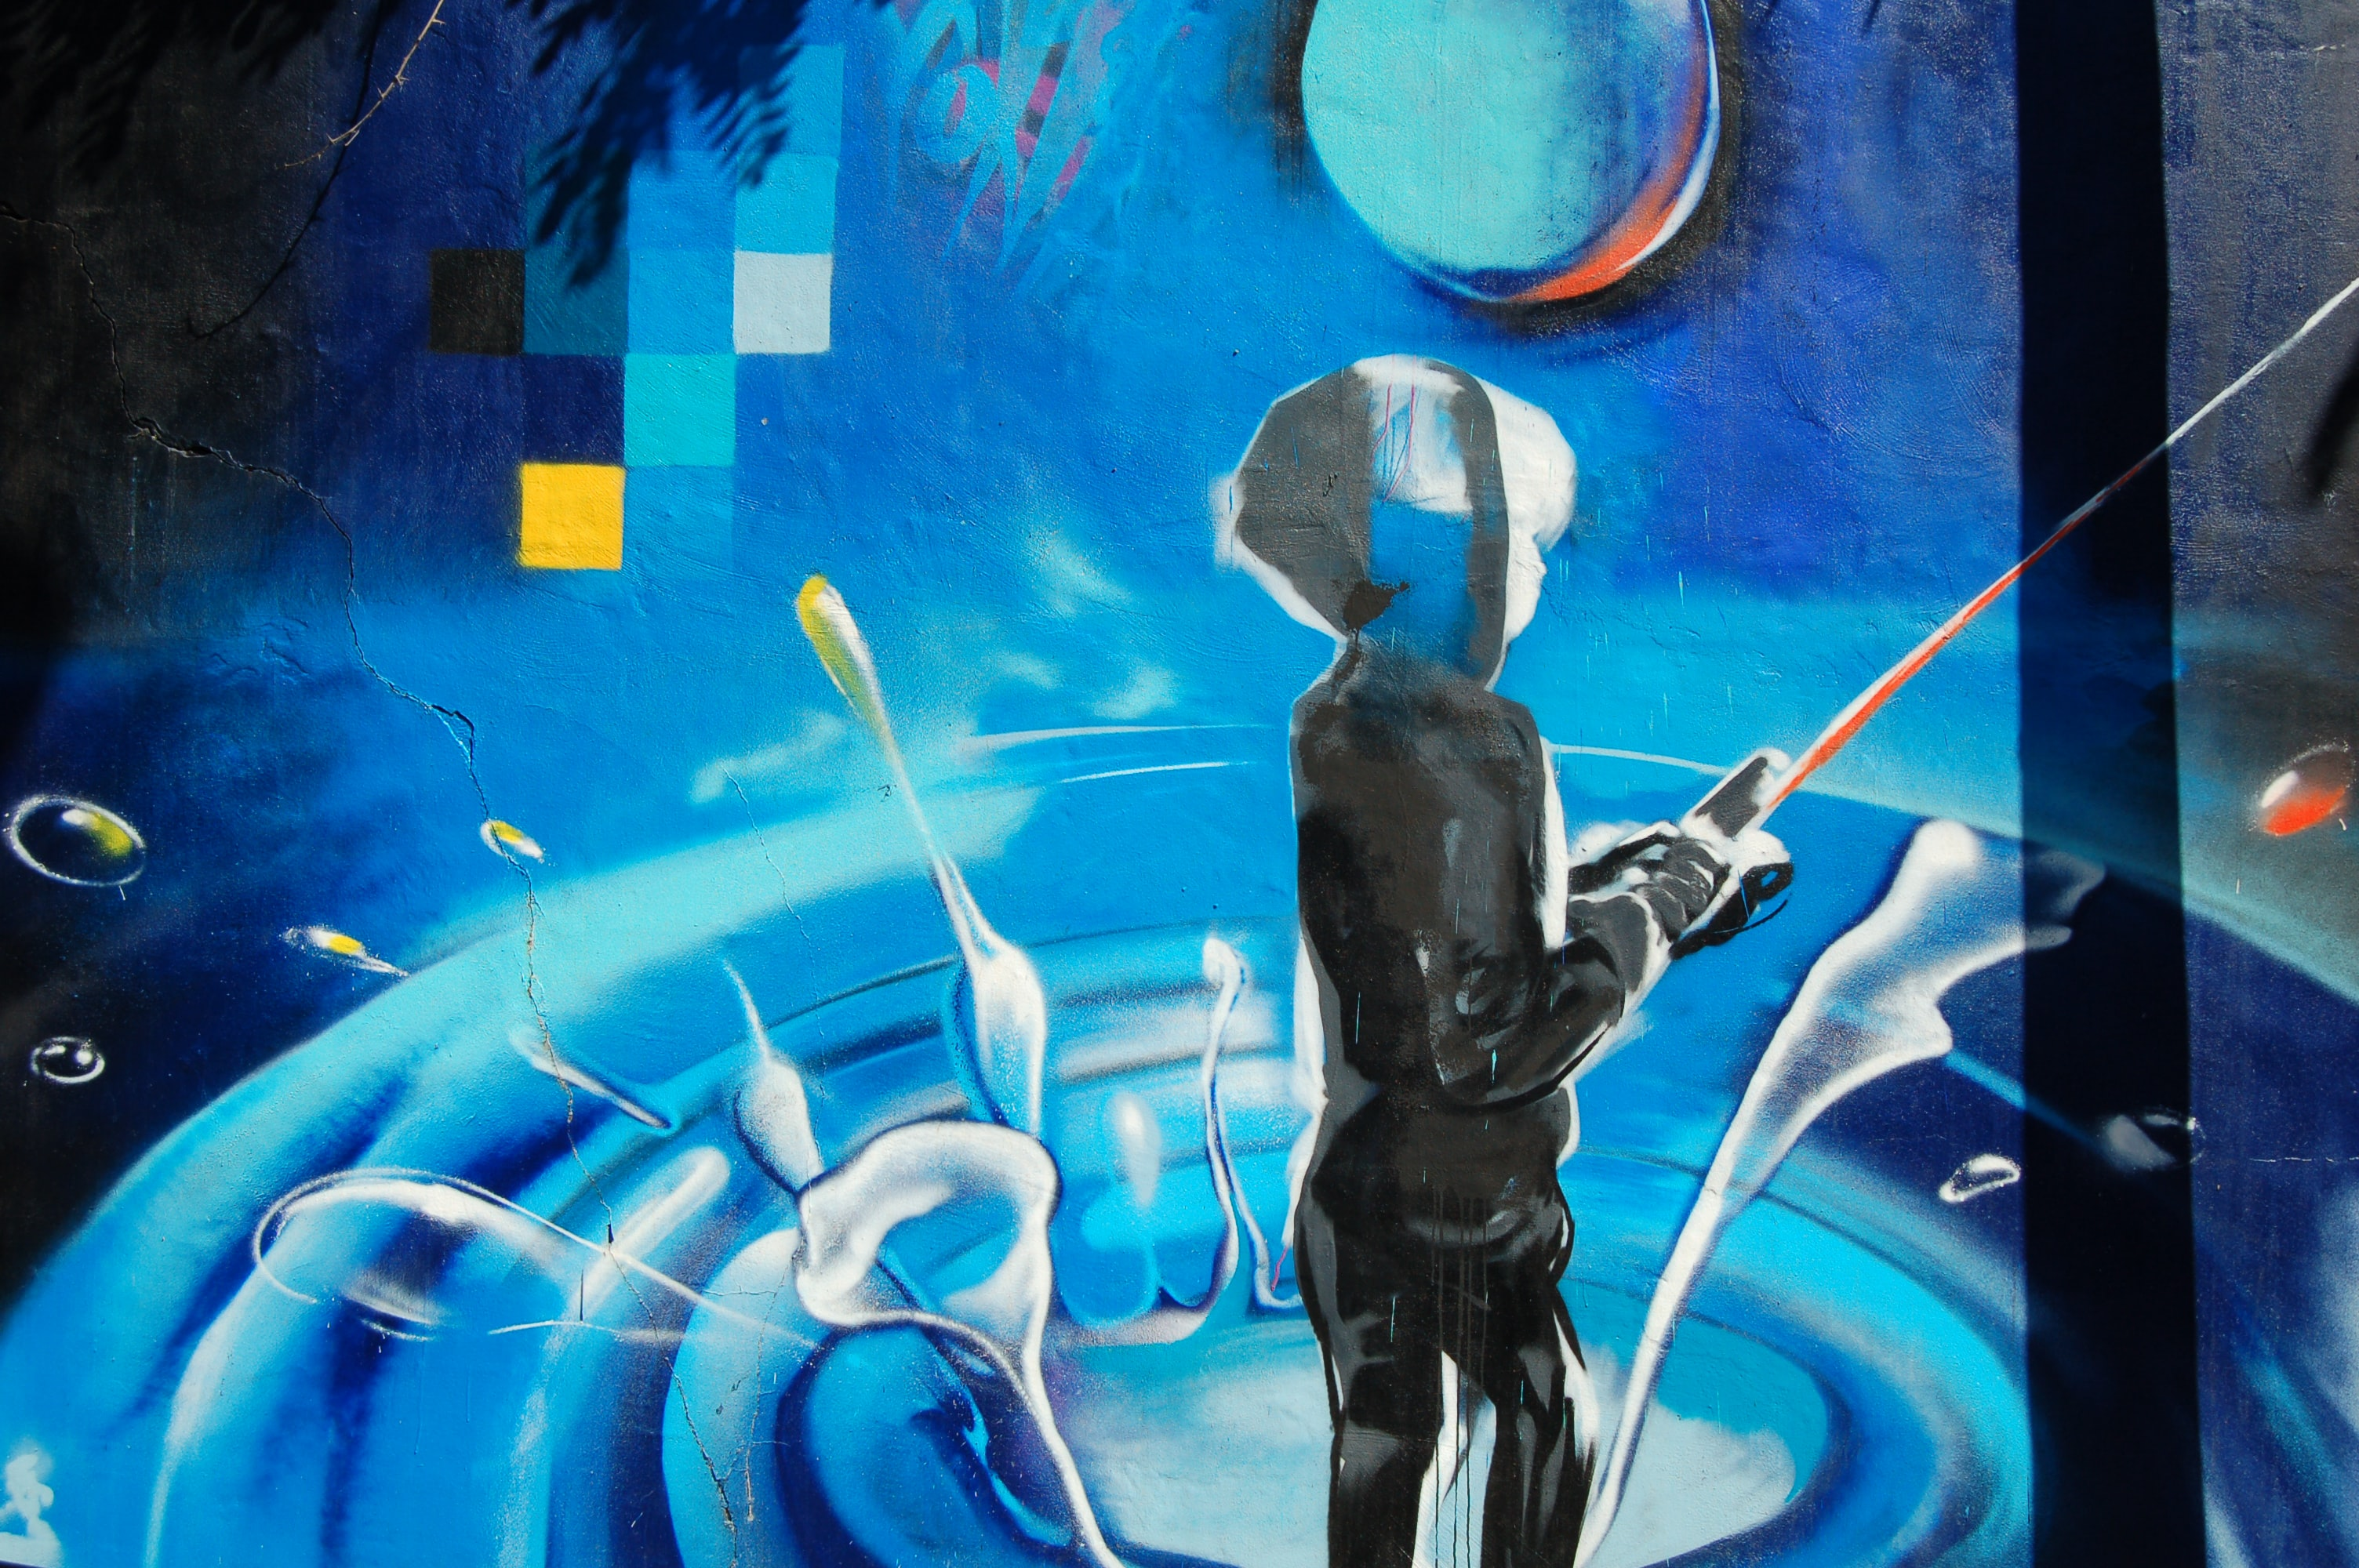 A wall mural of a person in a hooded jacket standing in water fishing.